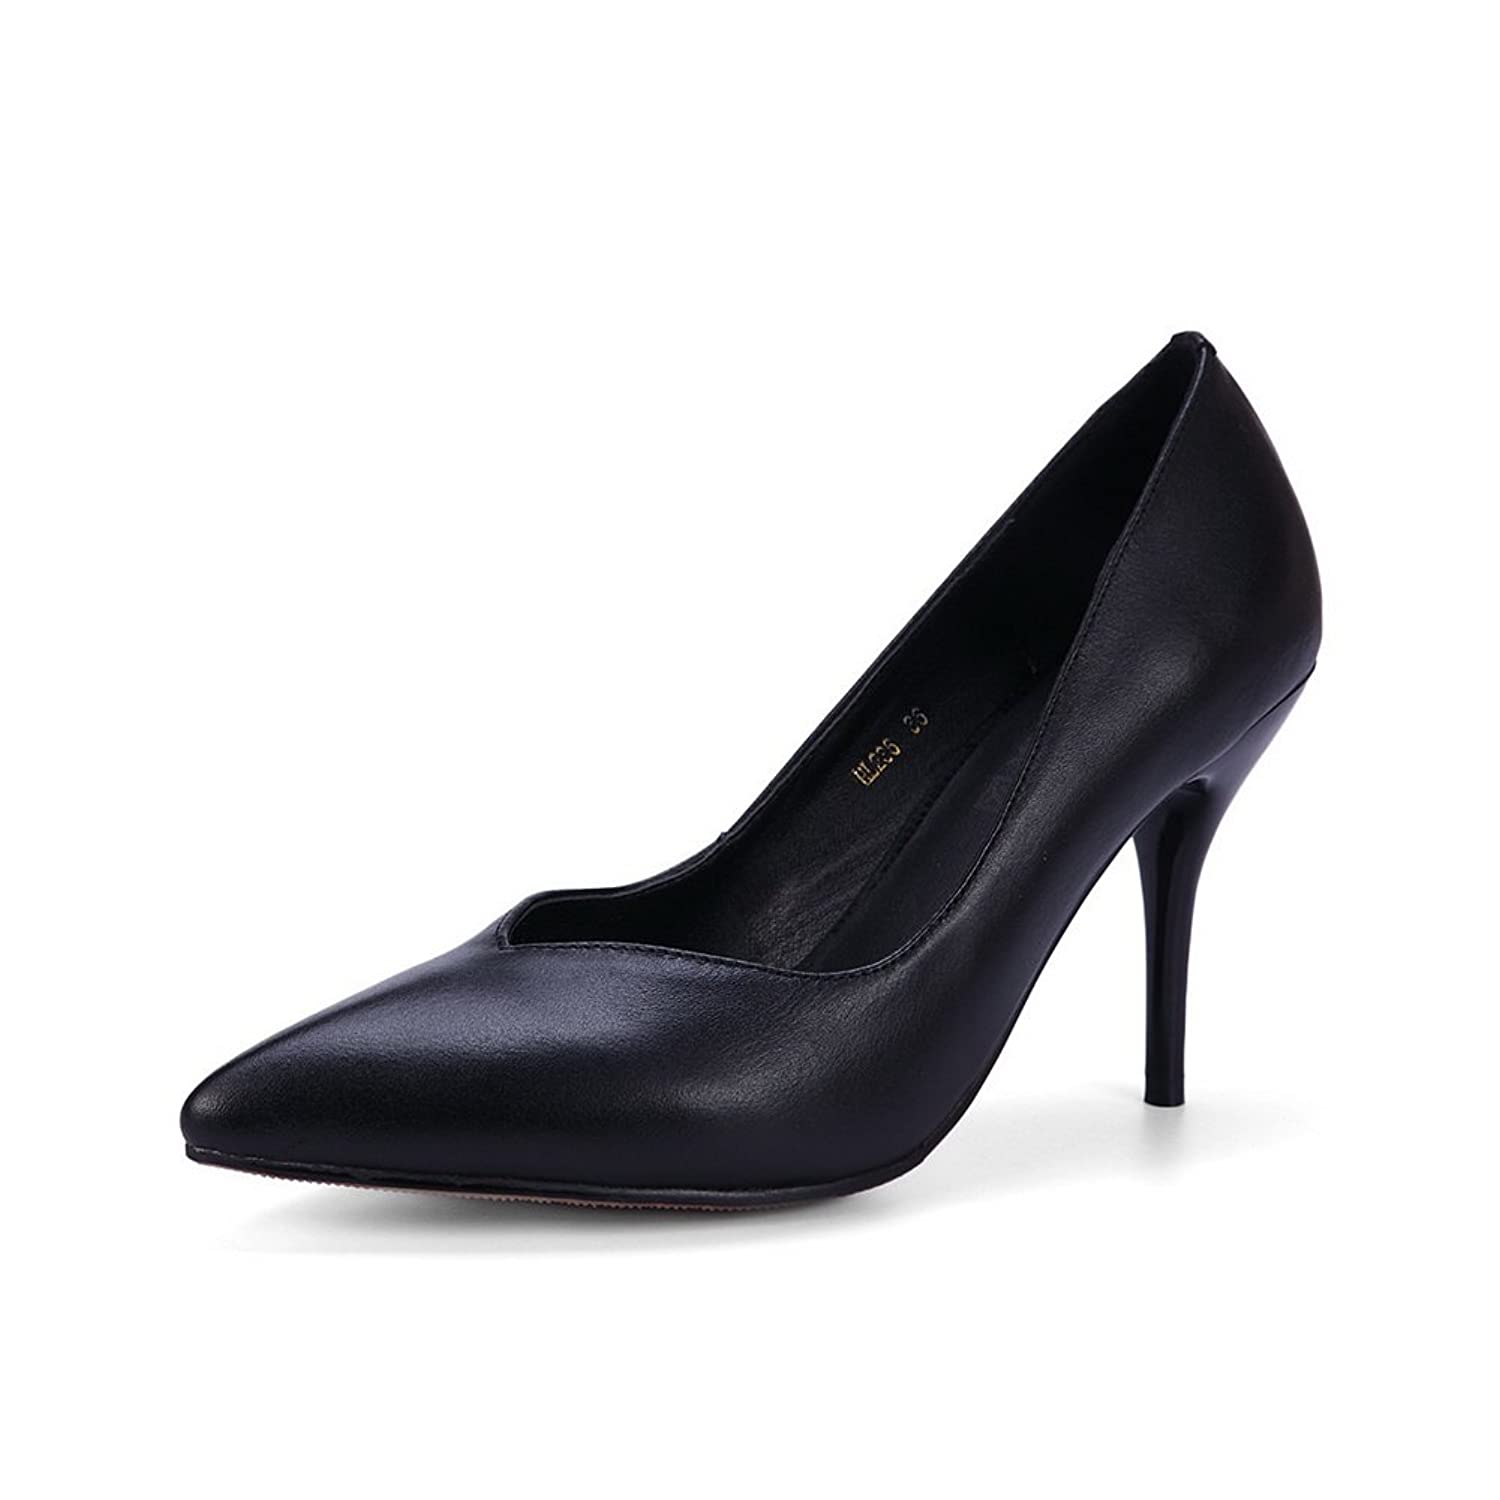 497d5f68fce AdeeSu Womens Pointed-Toe Light-Weight Slip-Resistant Pleather Loafers Shoes  SDC03873